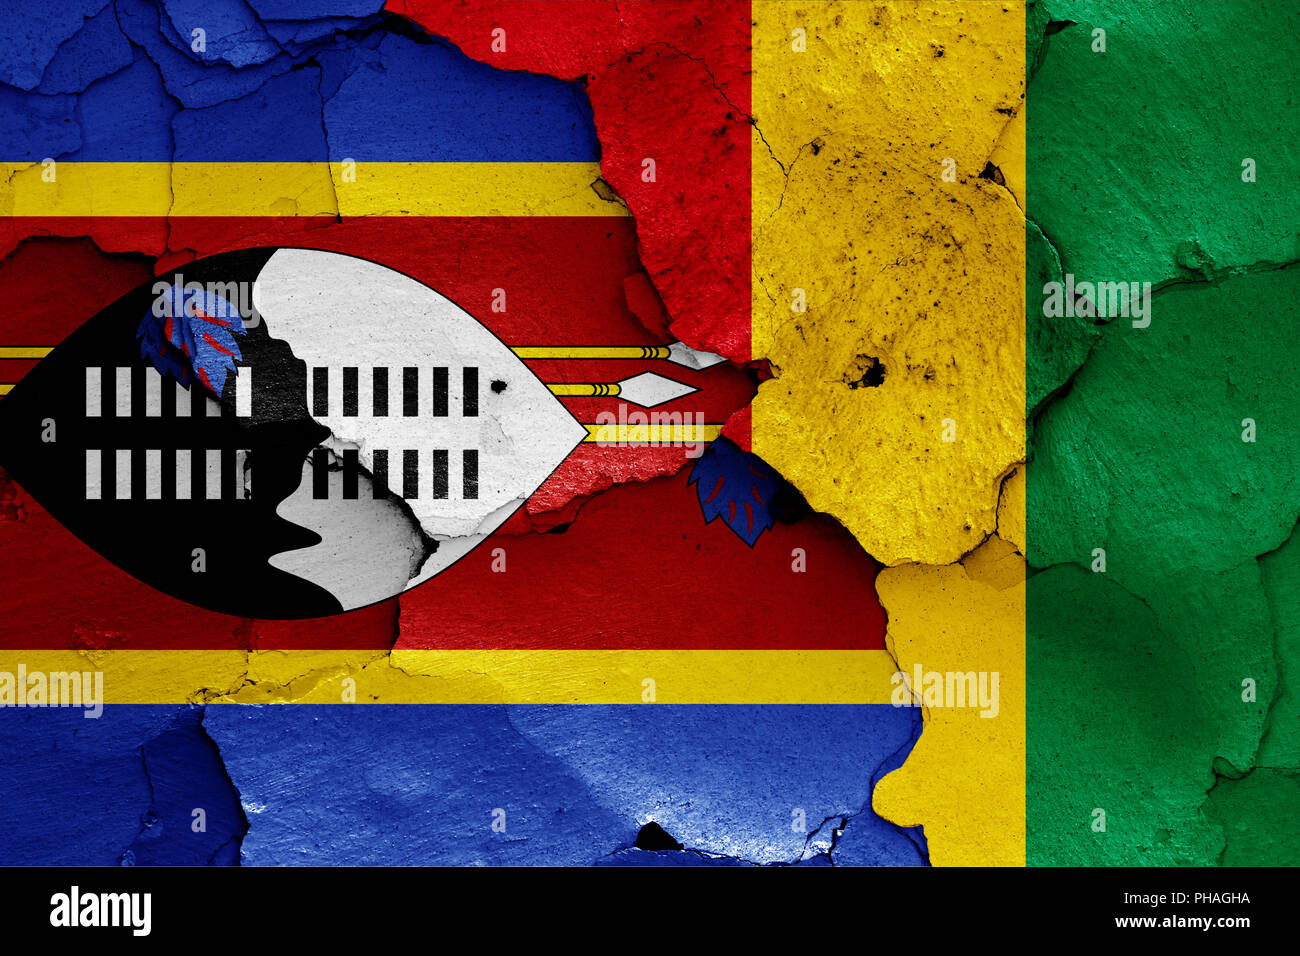 flags of Swaziland and Guinea painted on cracked wall - Stock Image